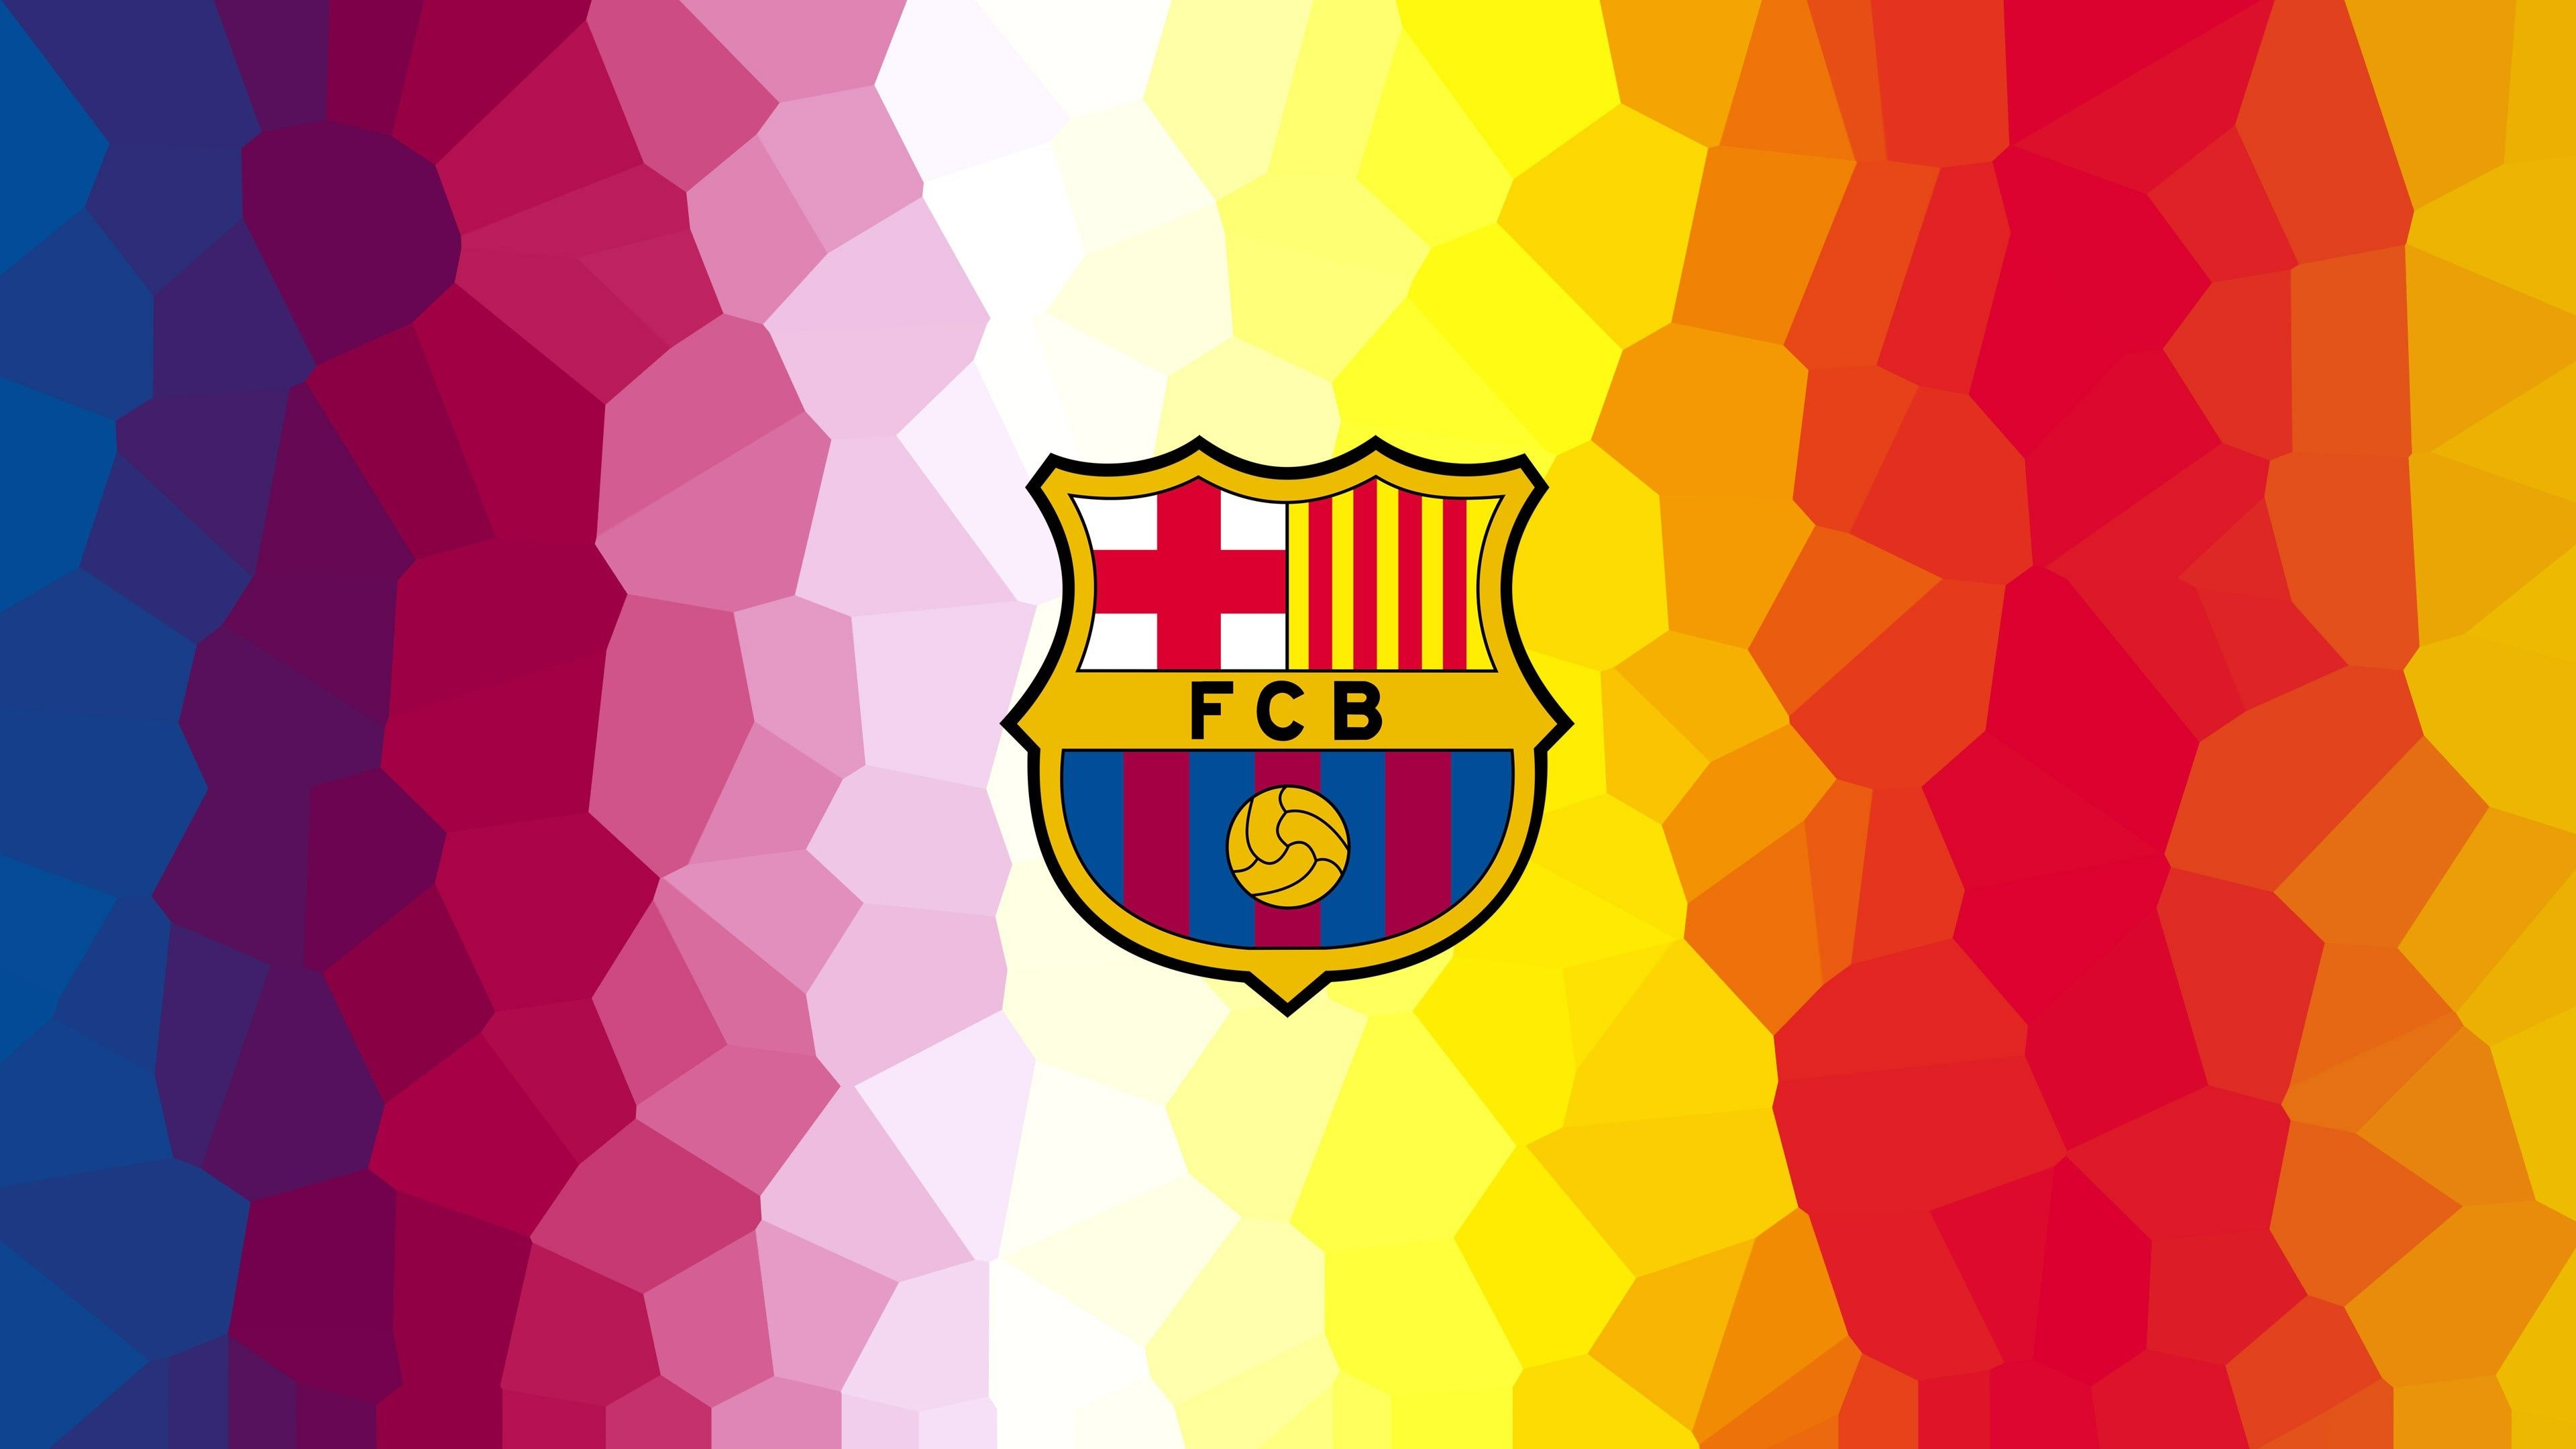 fc barcelona 4k wallpapers top free fc barcelona 4k backgrounds wallpaperaccess fc barcelona 4k wallpapers top free